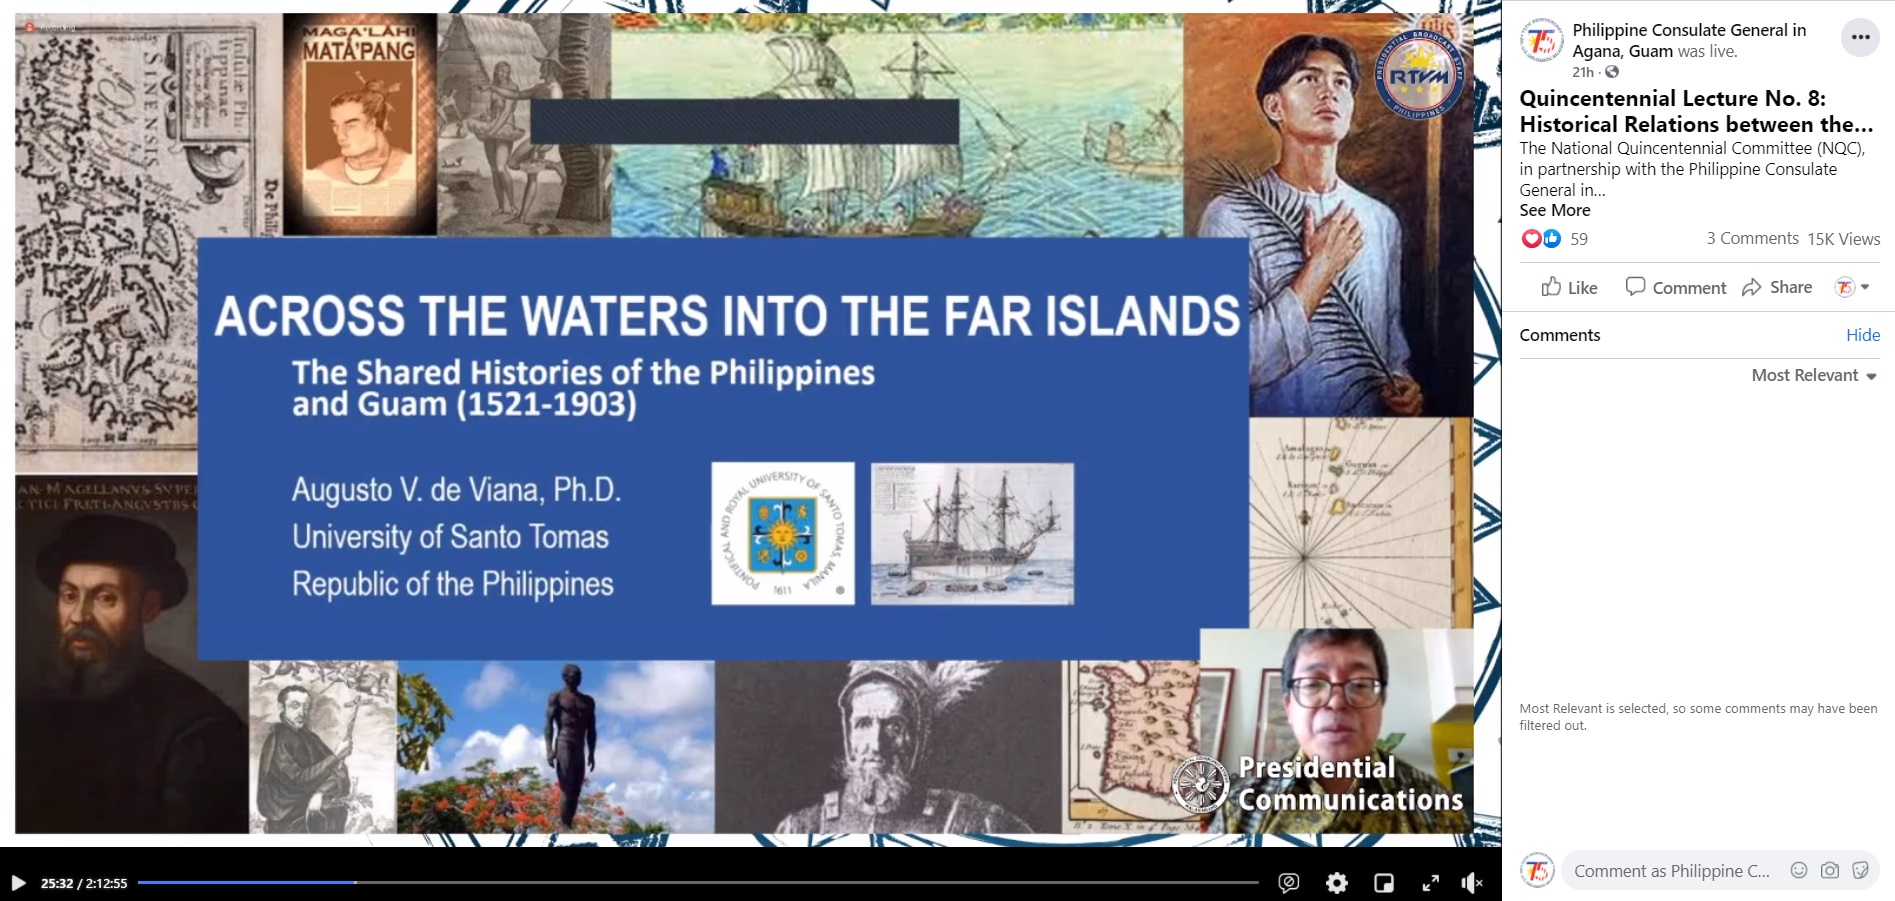 PHL Consulate General Hosts Online Lecture on PHL-Mariana Islands Historical Relations